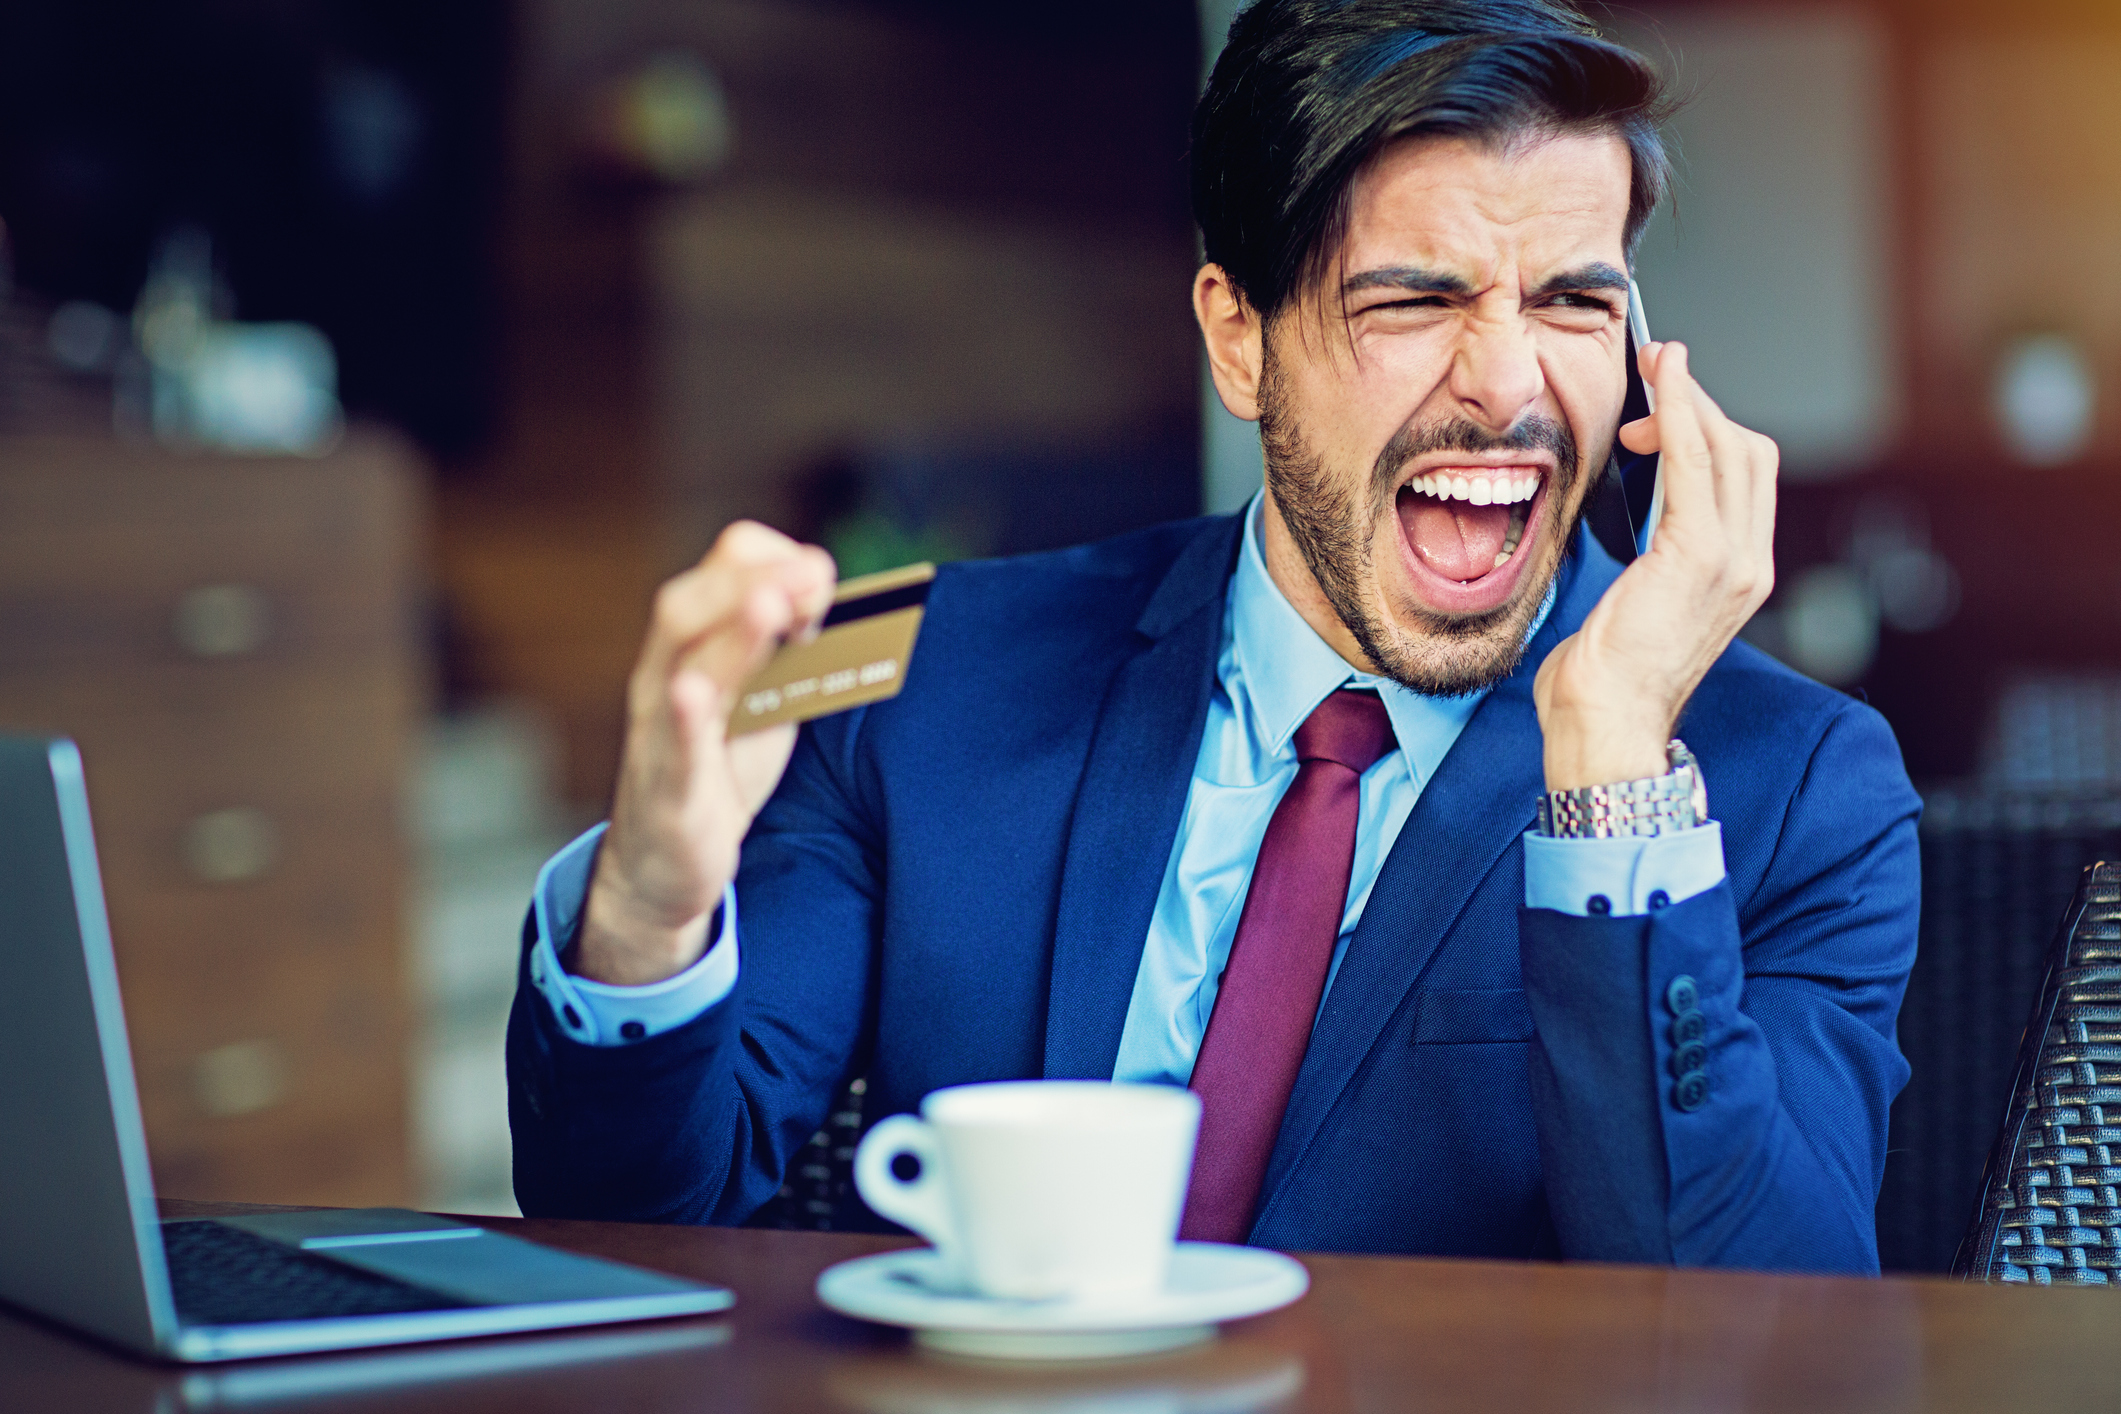 5 Tips to Avoid Annoying Phone and Email Spam